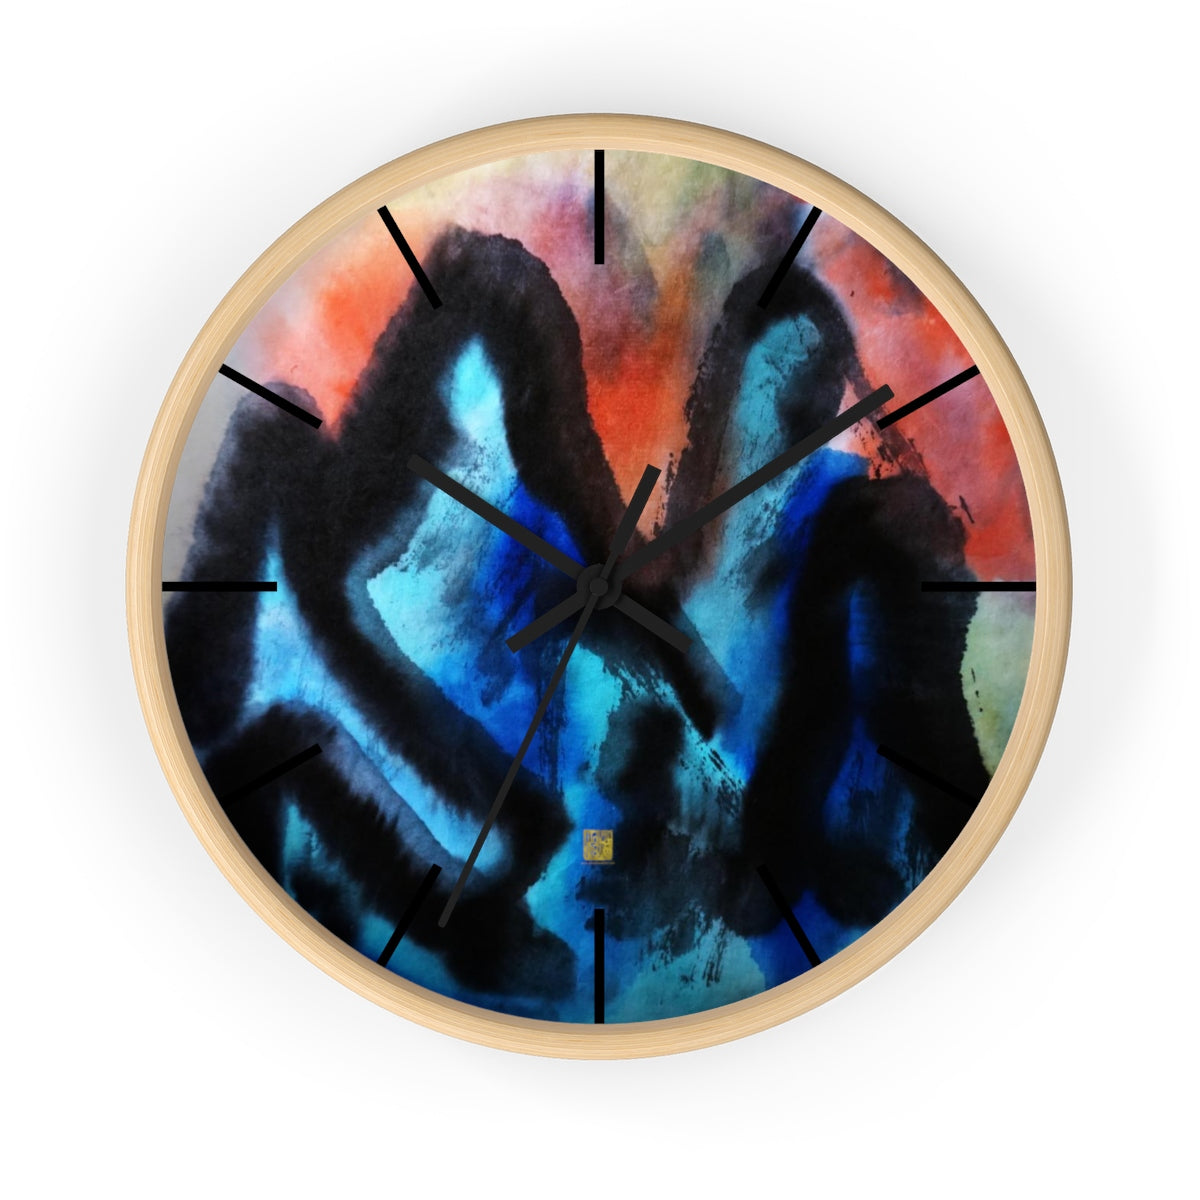 Blue Mountain Asian Contemporary Art Large Modern 10 inch Wall Clock, Made in USA - alicechanart